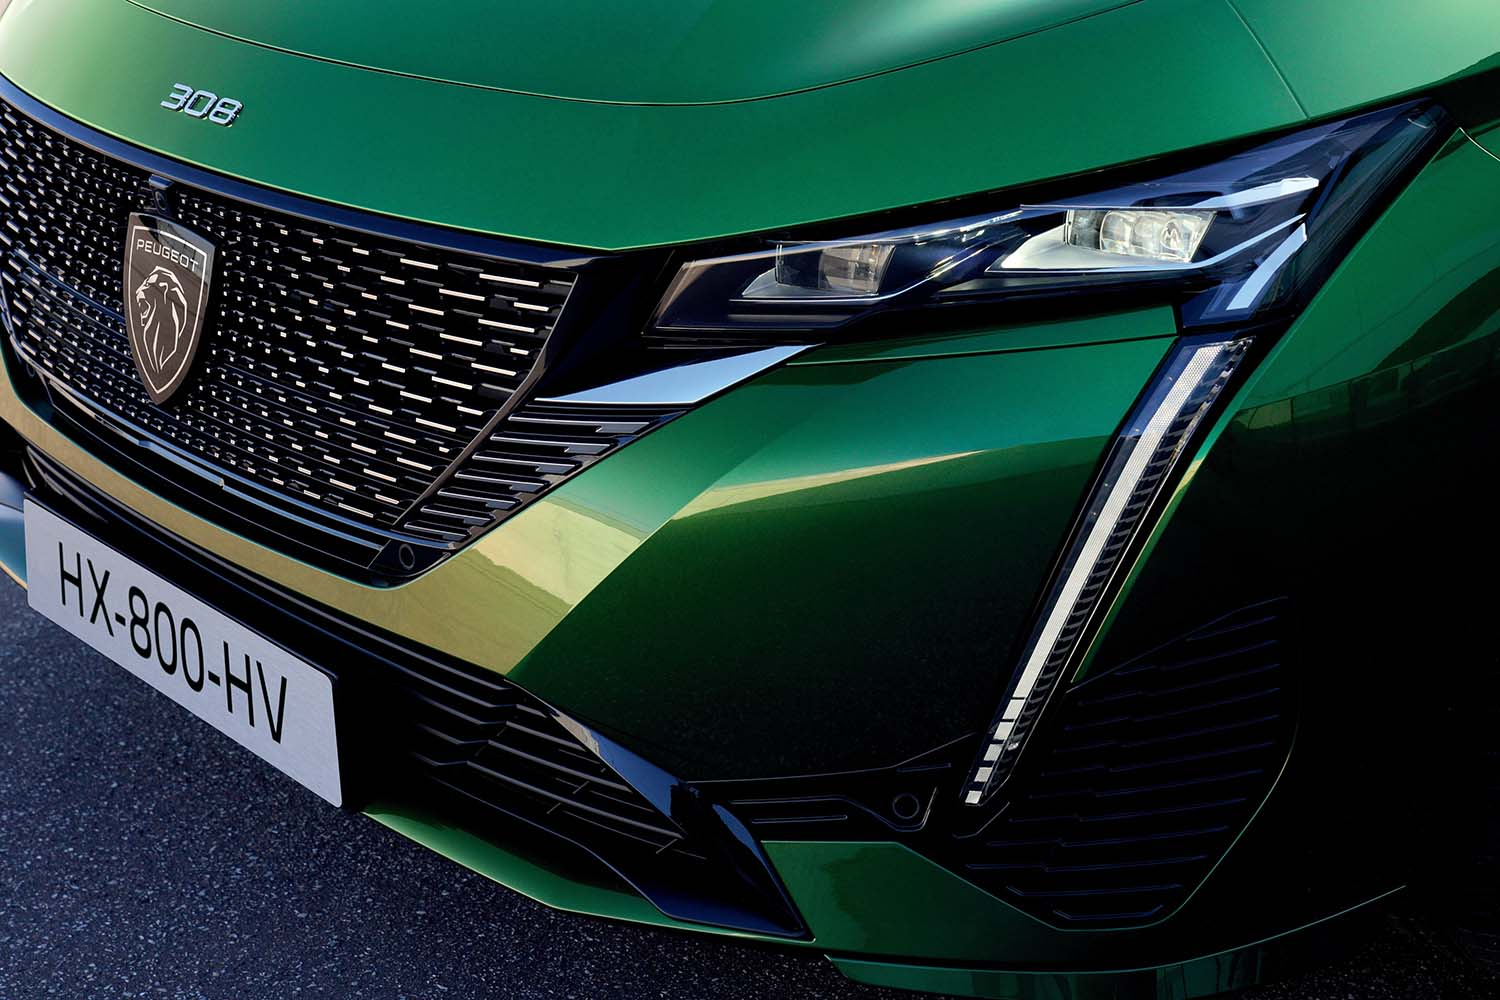 Peugeot 308 – New Types Of Lighting On The Lion's Look, Fangs And Claws